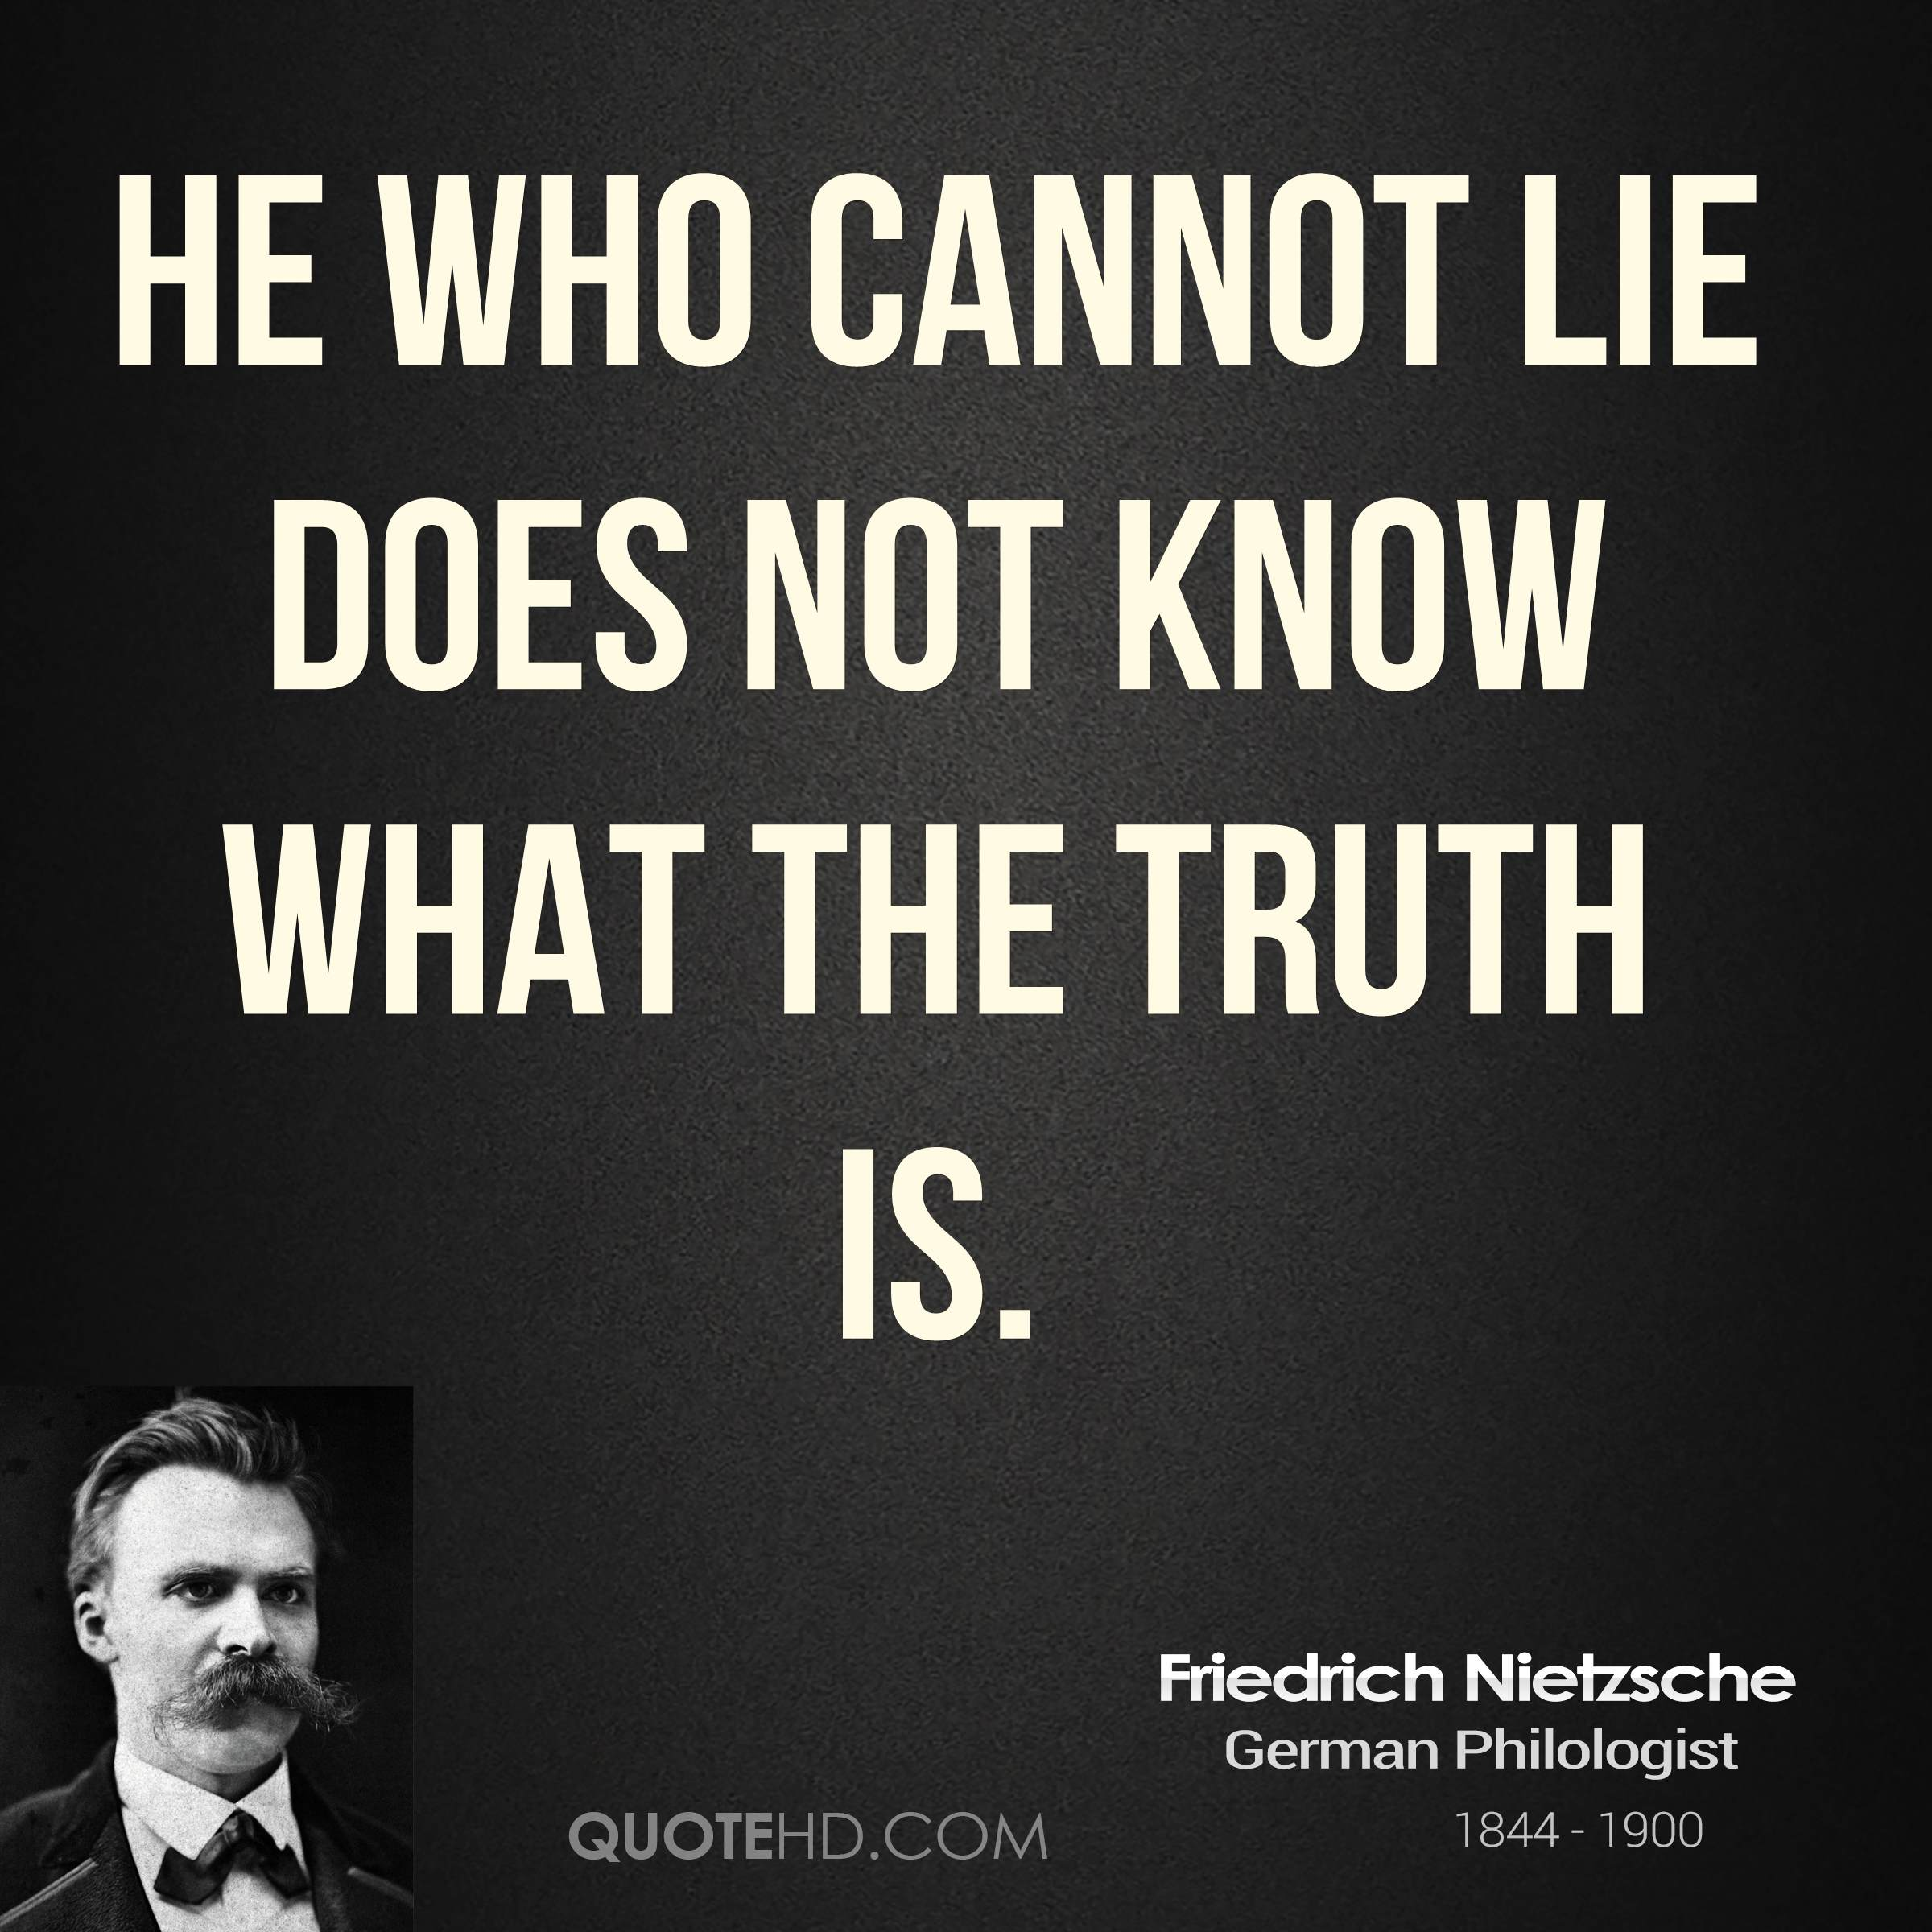 He who cannot lie does not know what the truth is.